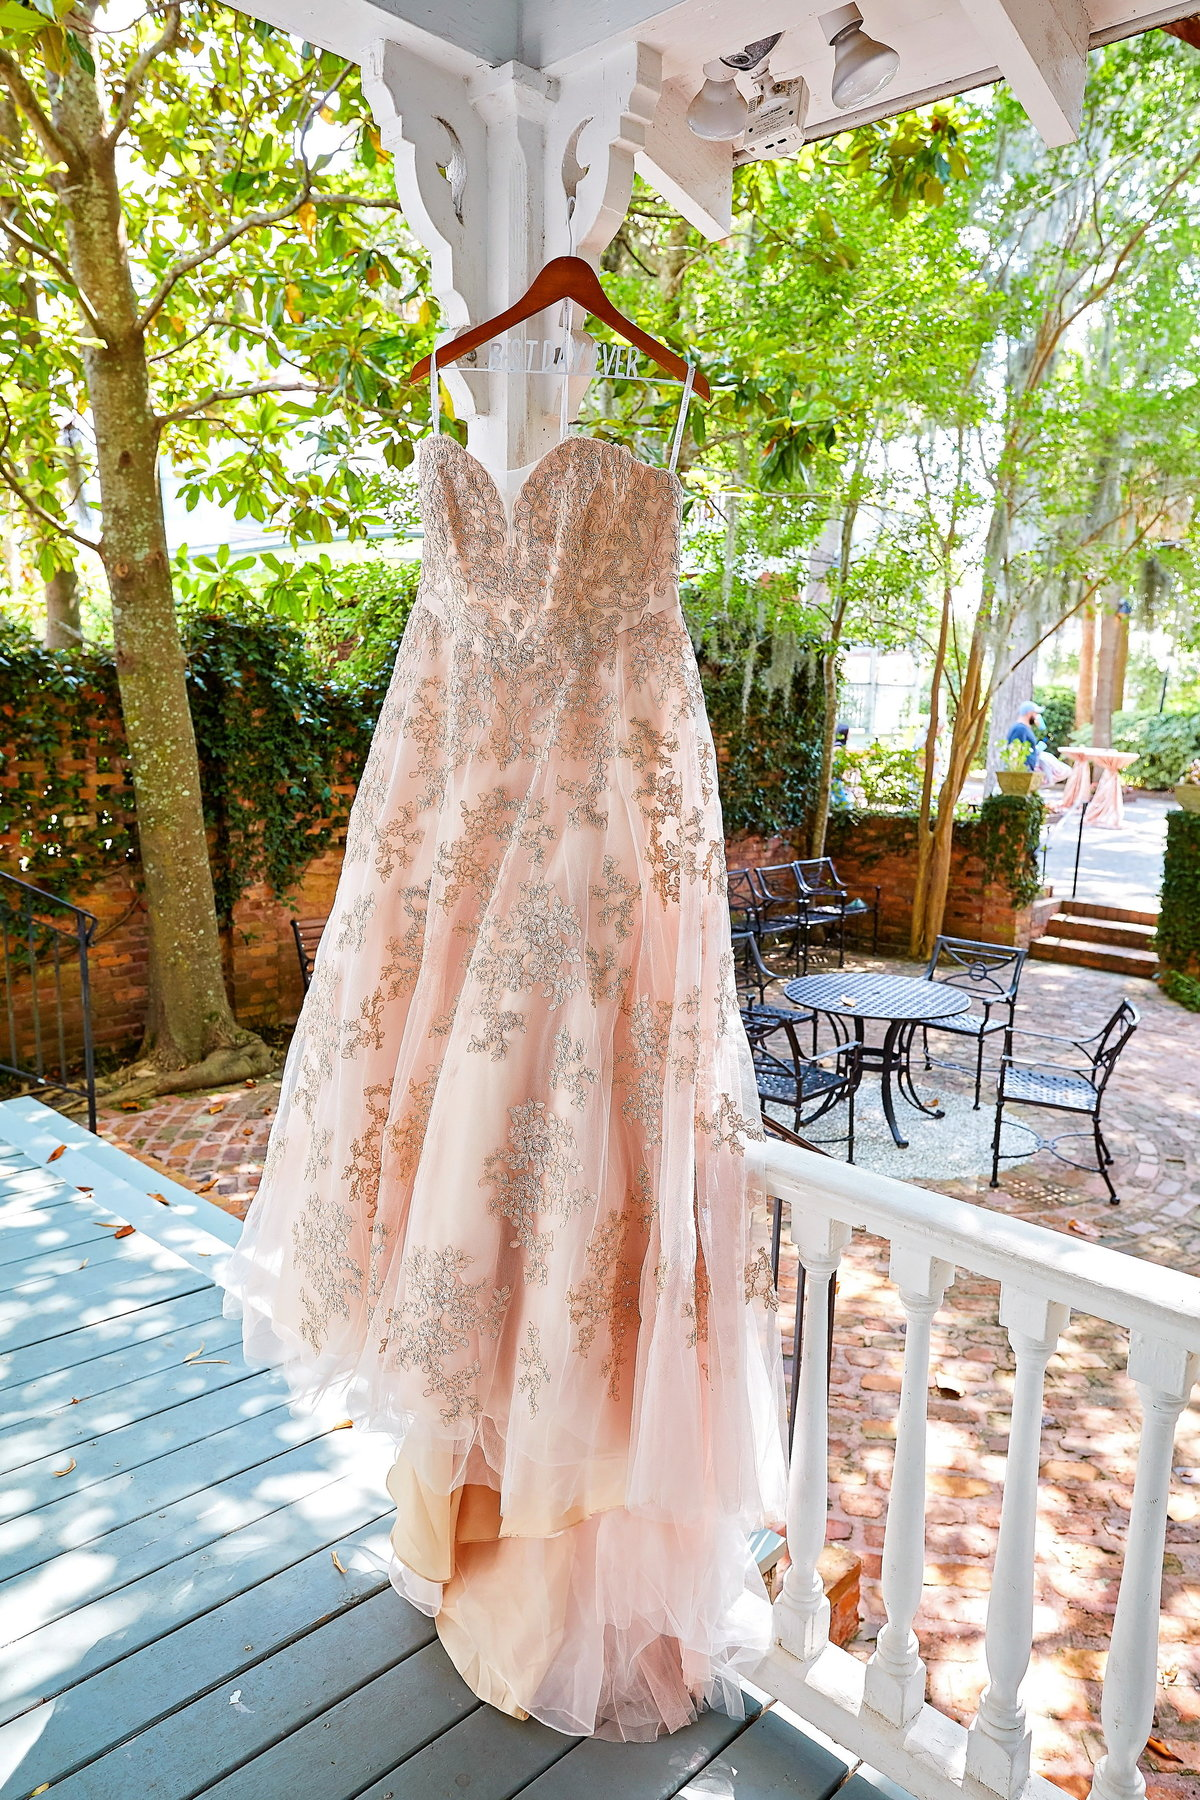 Blush, beaded wedding gown hanging on a porch at the Beaufort Inn, Beaufort, SC